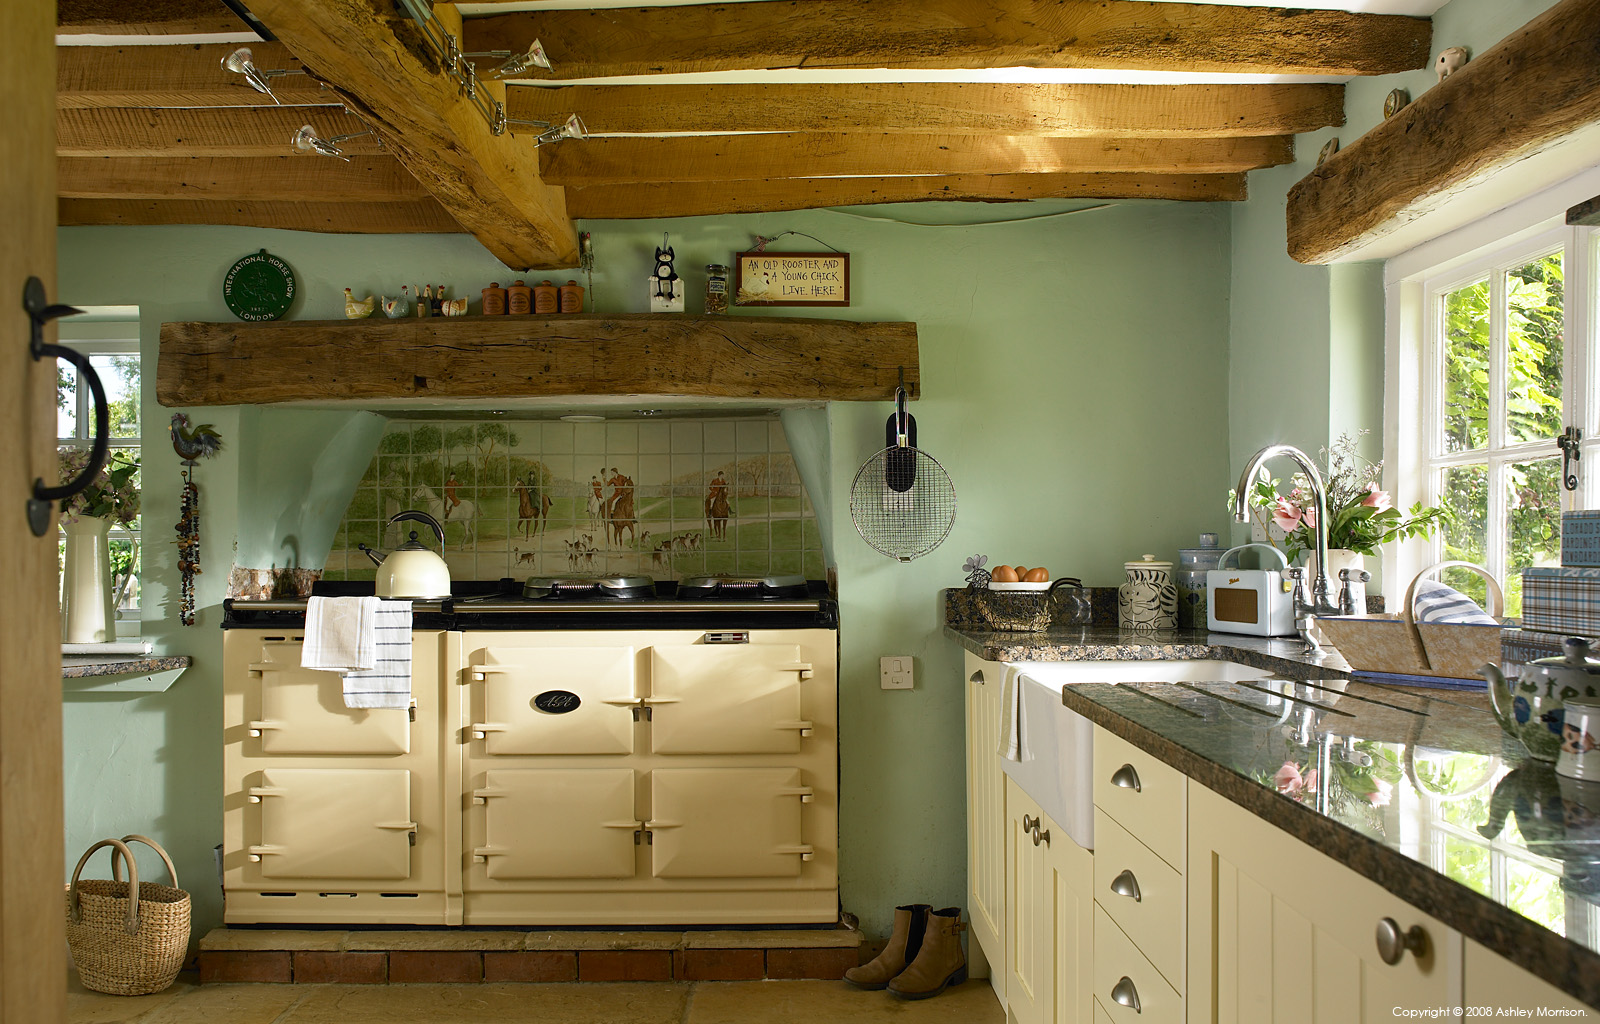 Country style kitchen in tracey annison and andy rosser 39 s for Country cottage kitchen design